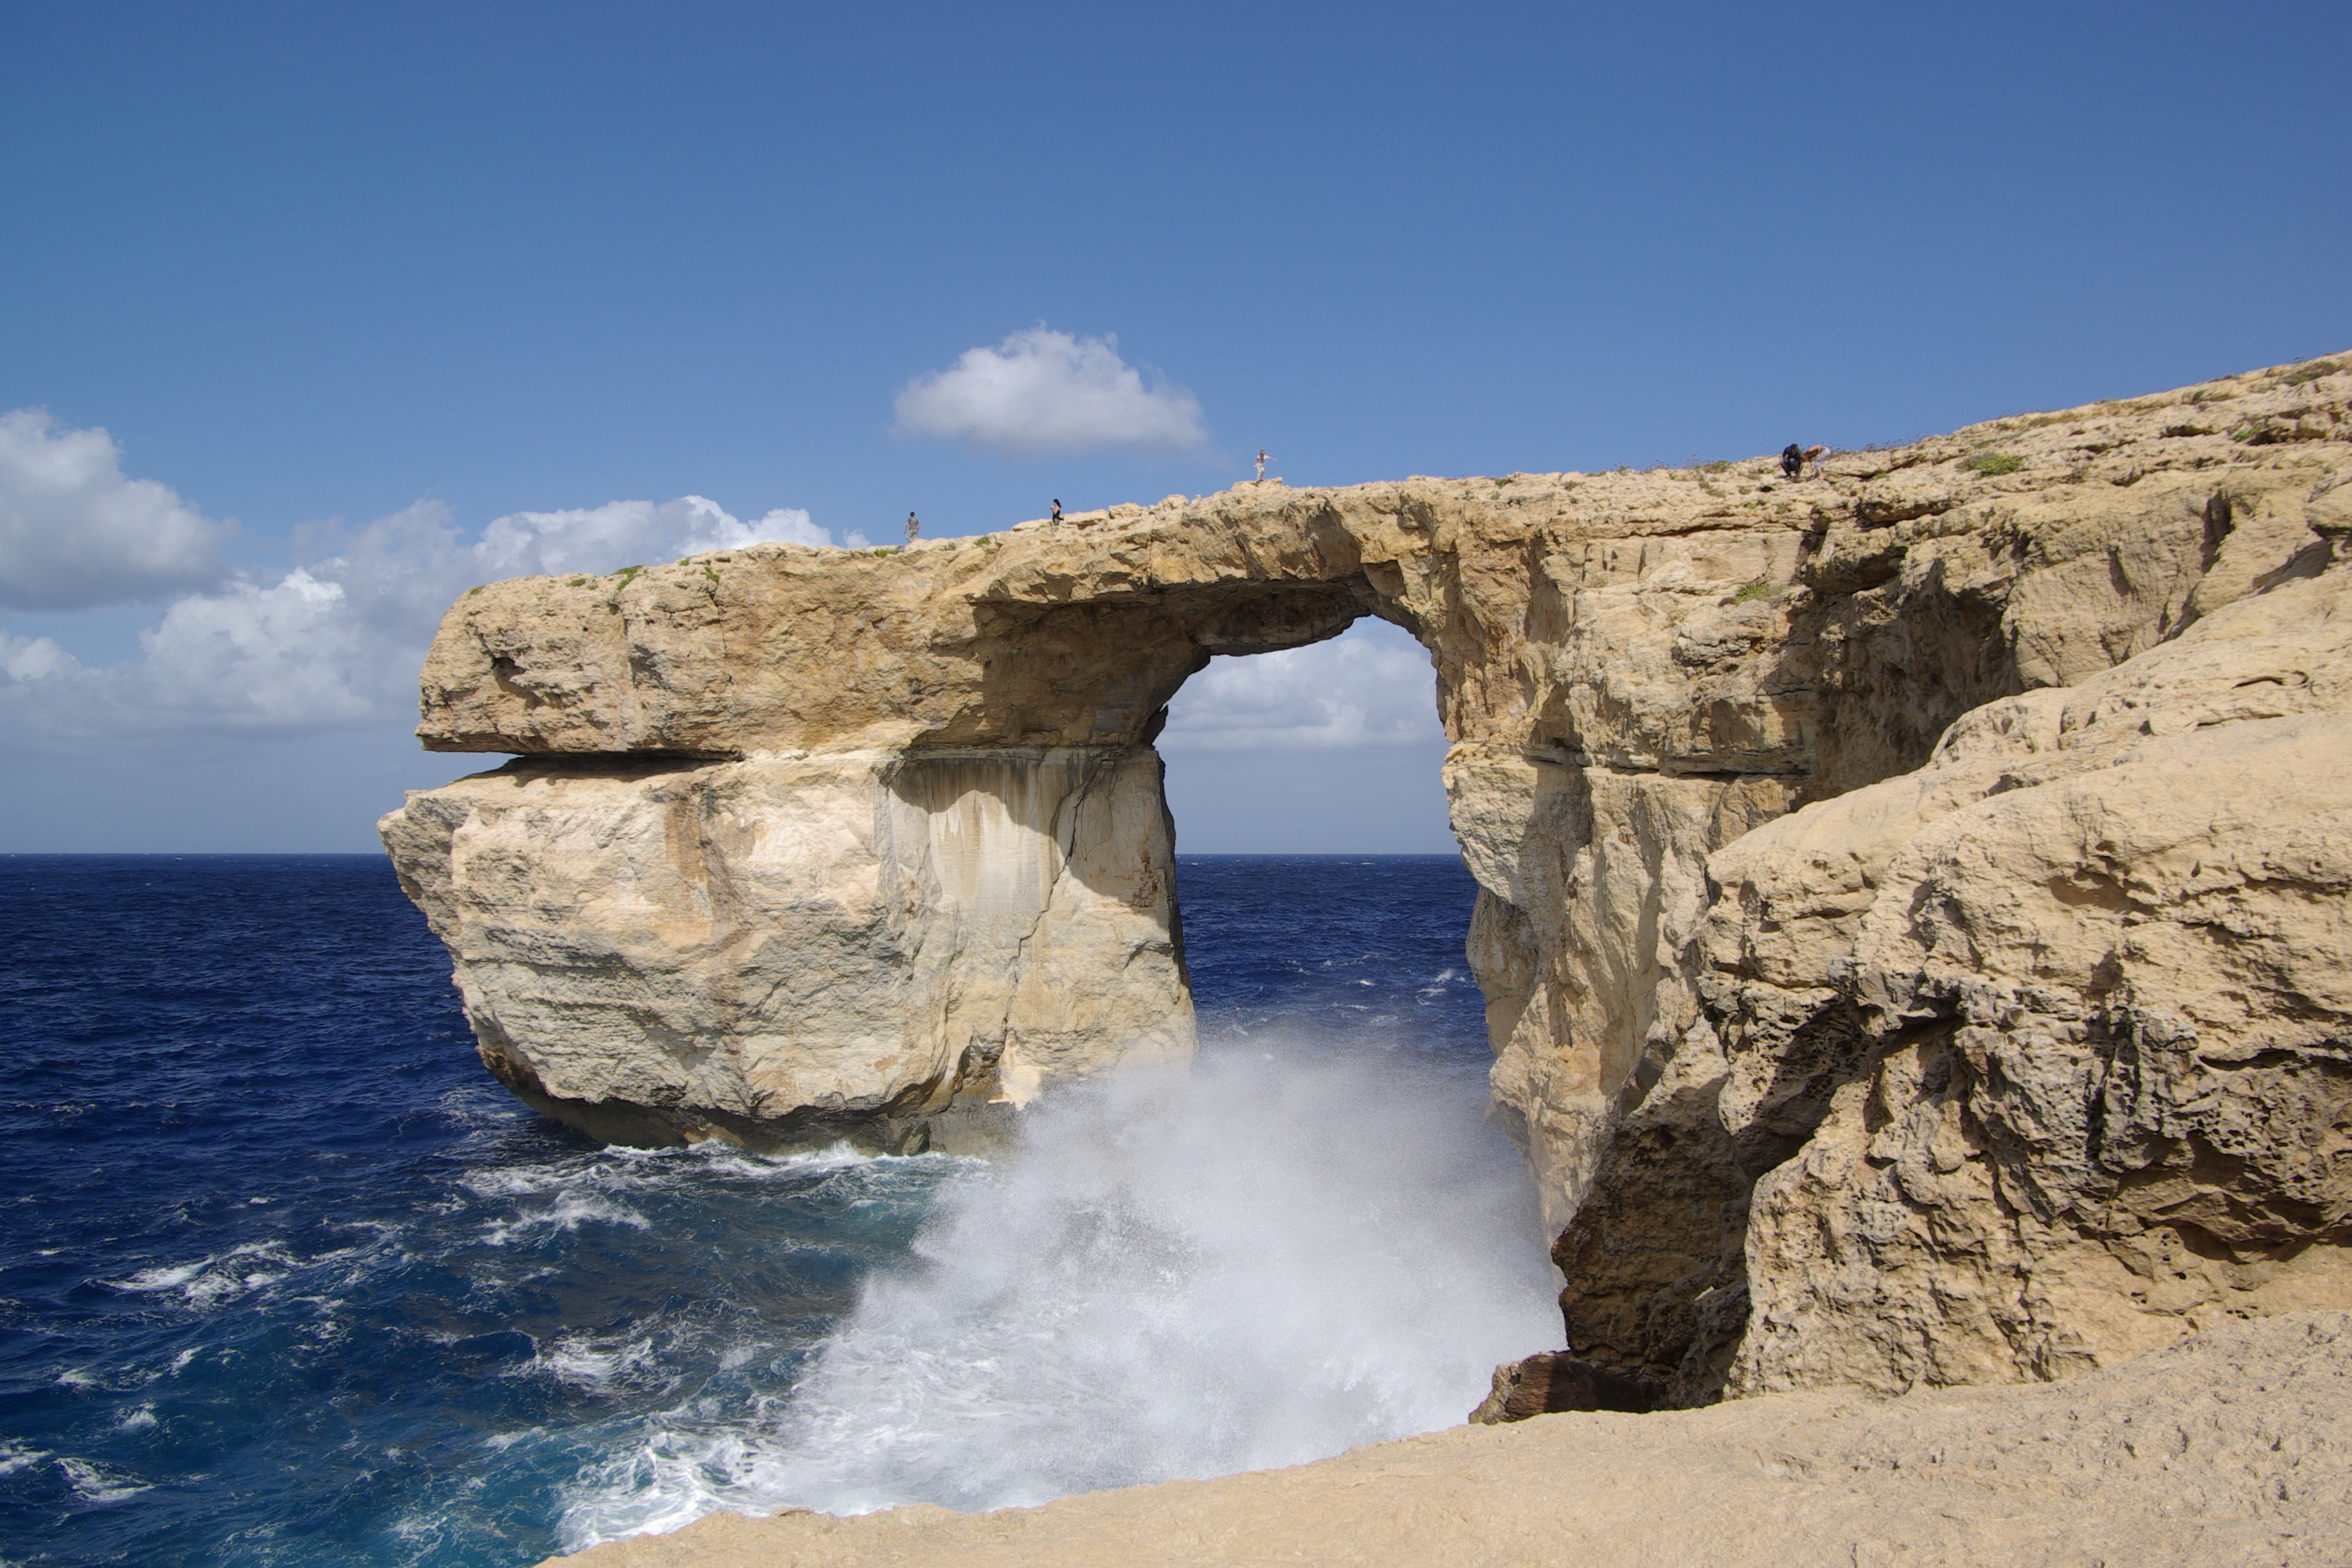 The image shows a rock feature called the Azure Window in Gozo, Malta, as waves crash against the coast.